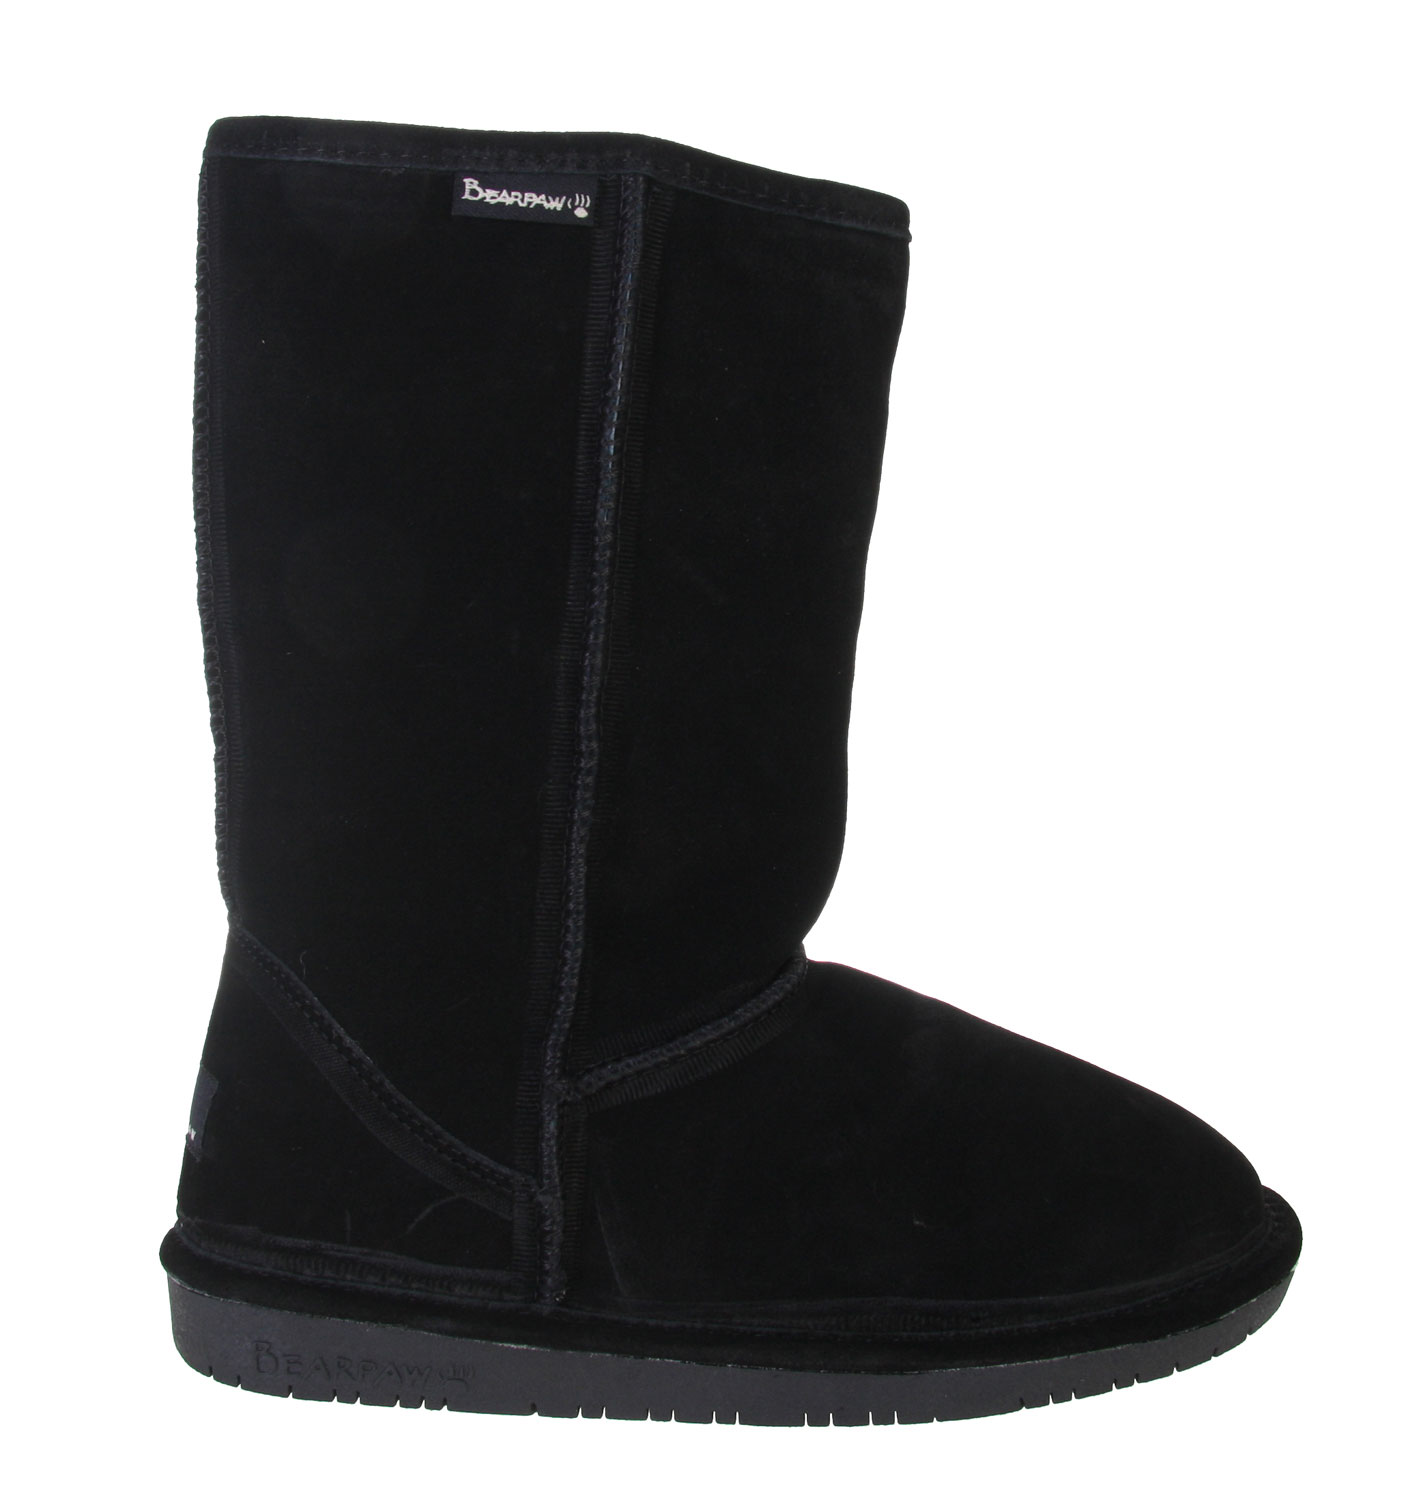 Suede Sheepskin/Wool lining Sheepskin Footbed TPR Outsole - $59.95